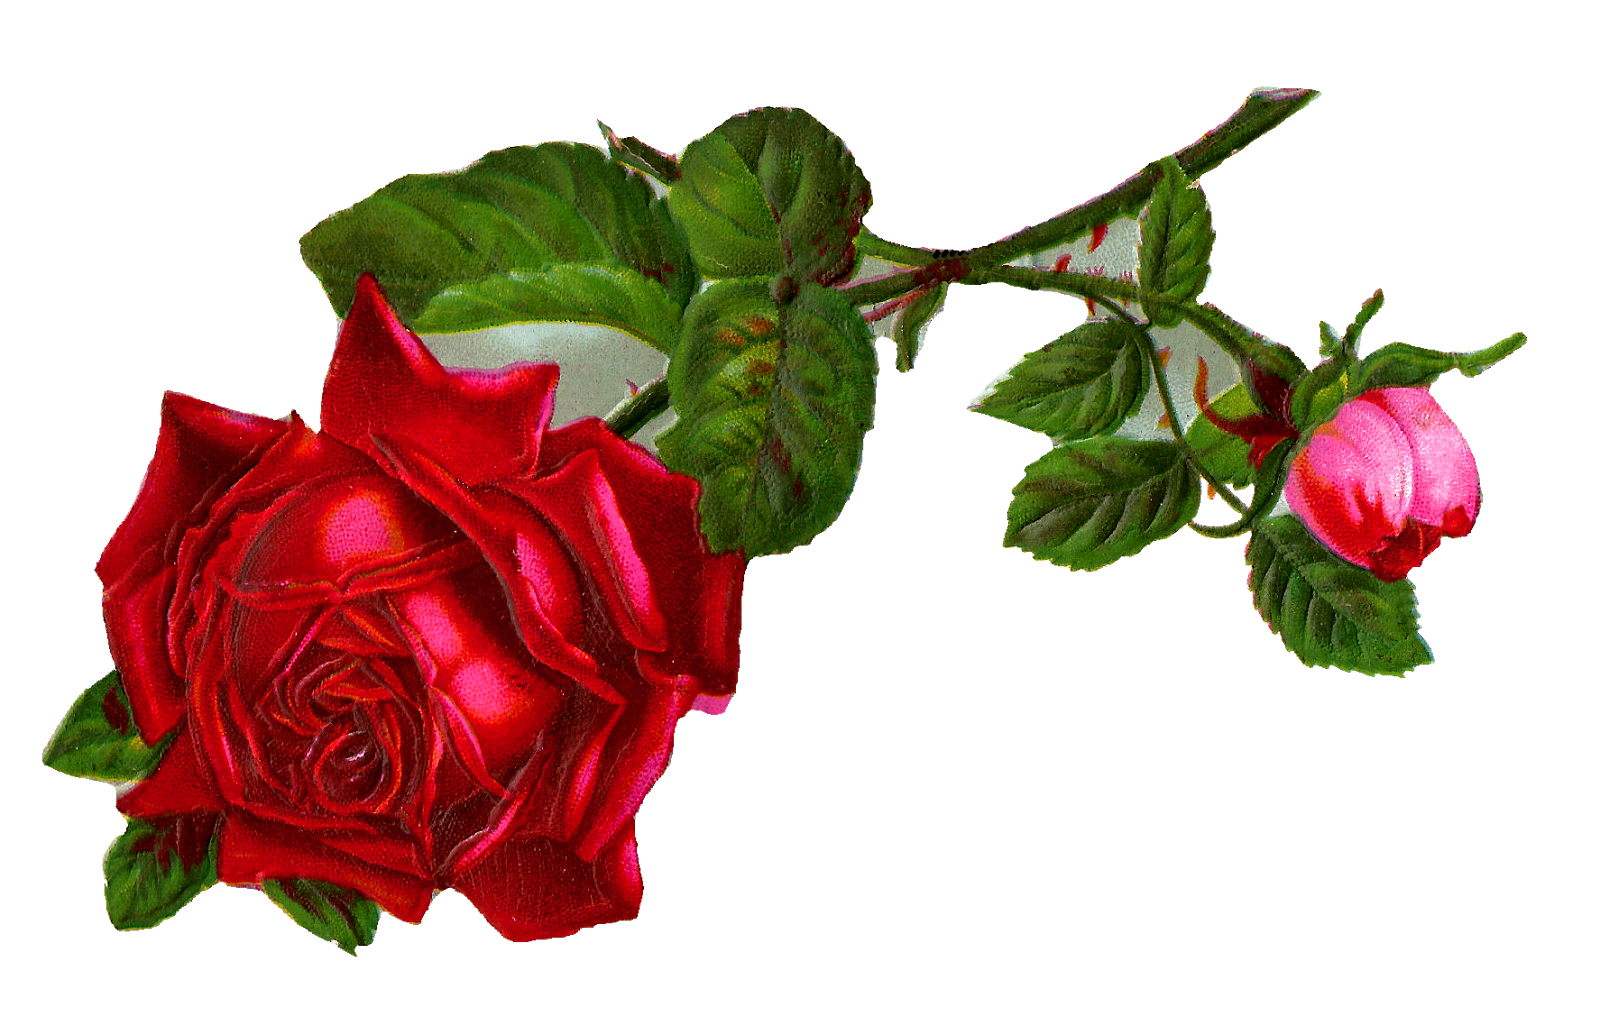 Antique images stock red. Clipart rose branch